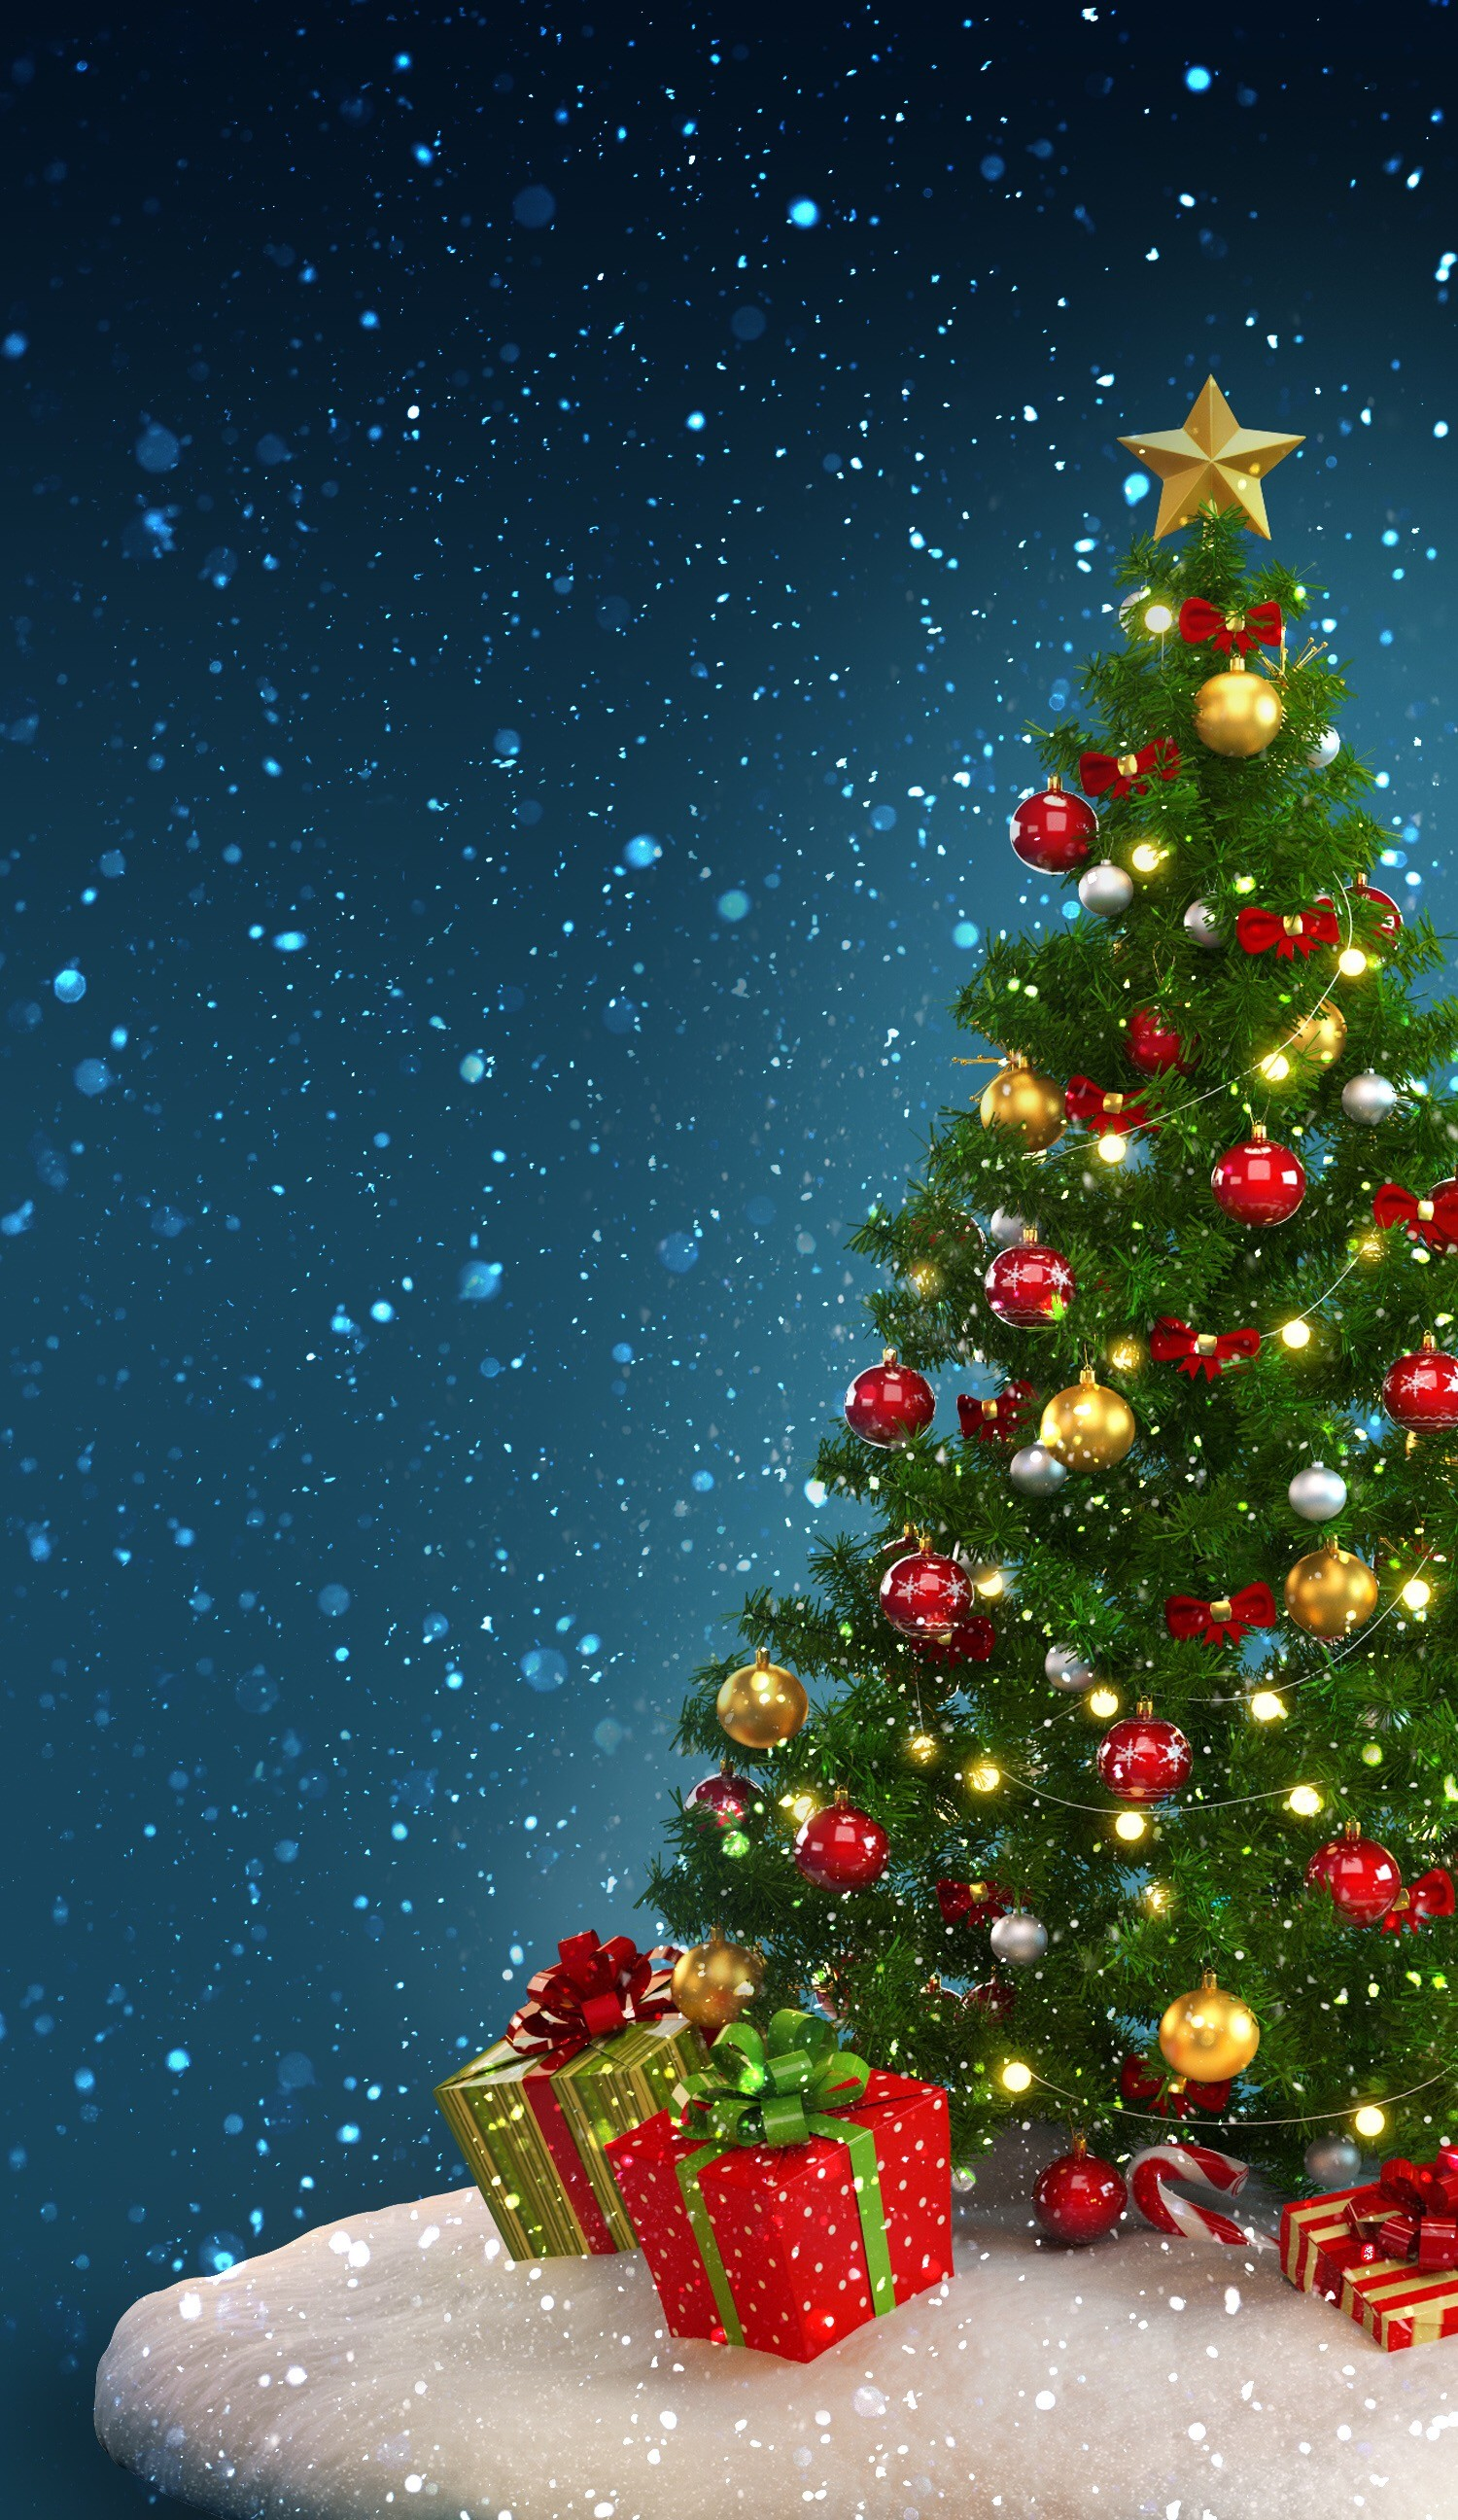 Christmas Tree Wallpaper 79 Images